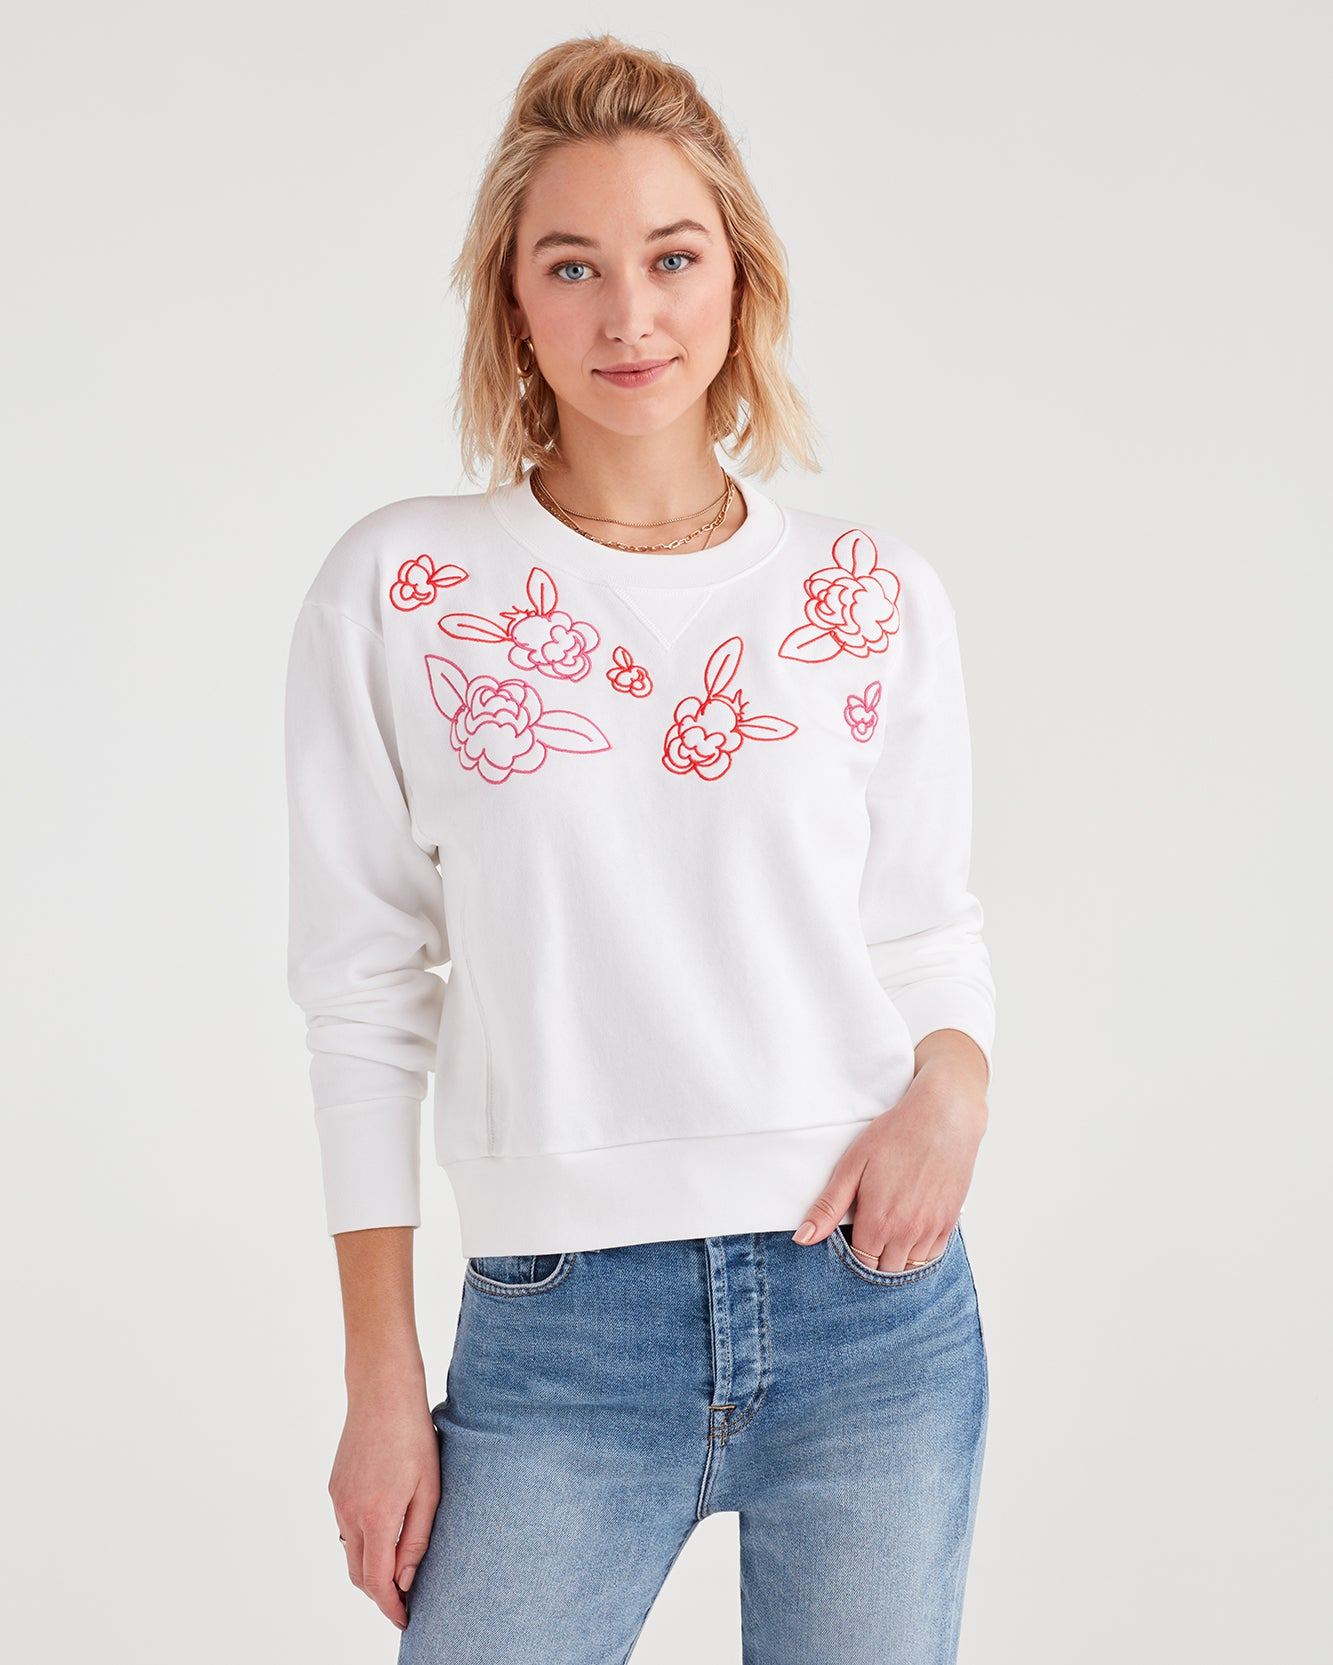 Image of Crewneck Sweatshirt with Pink Floral Embroidery in Optic White